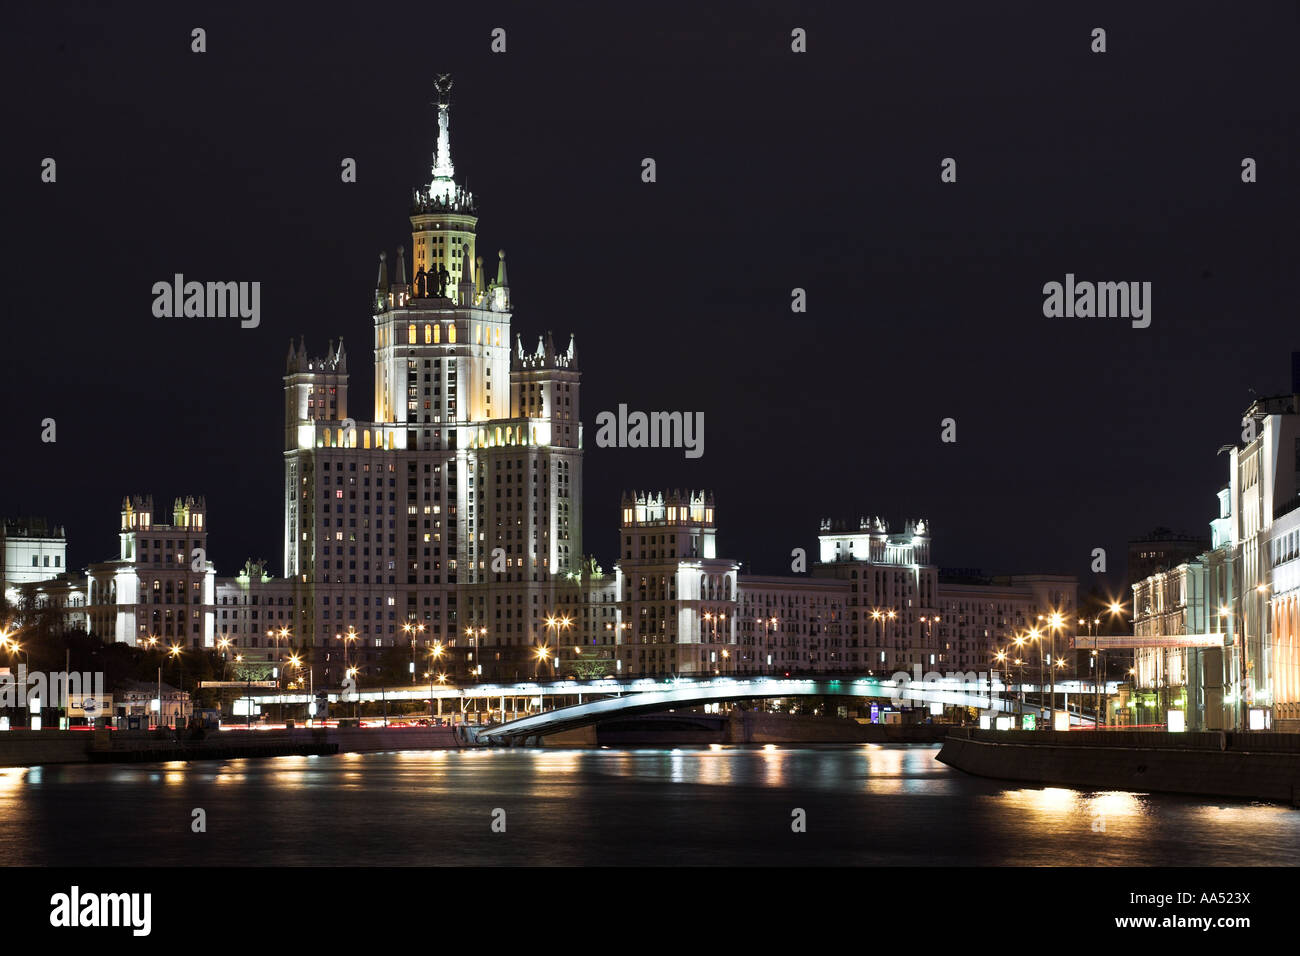 Stalinist Skyscraper, Moscow. - Stock Image